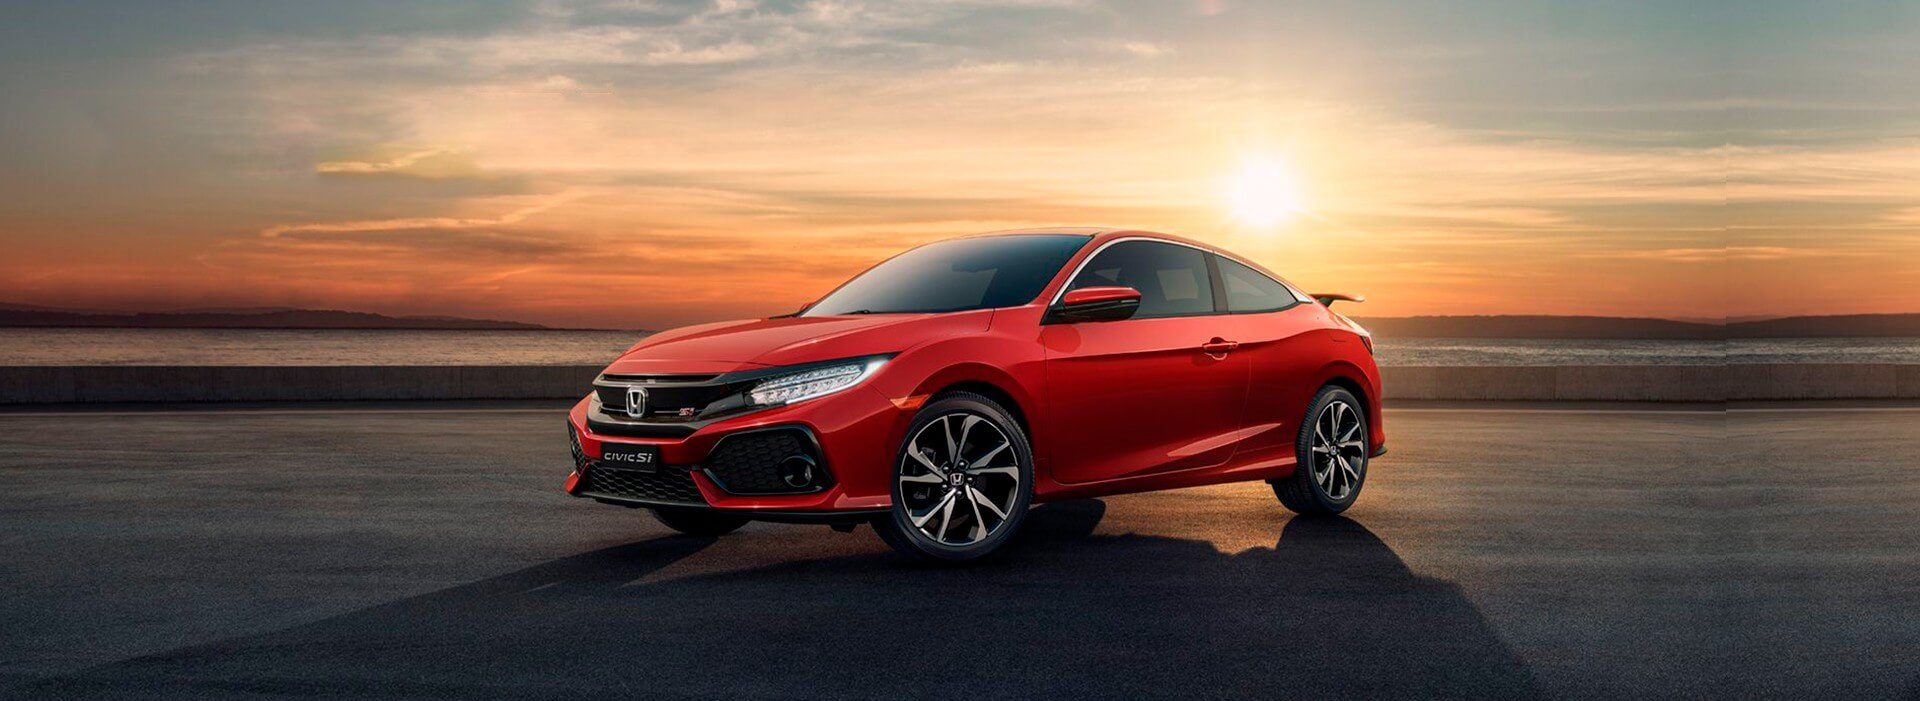 honda-civic-si